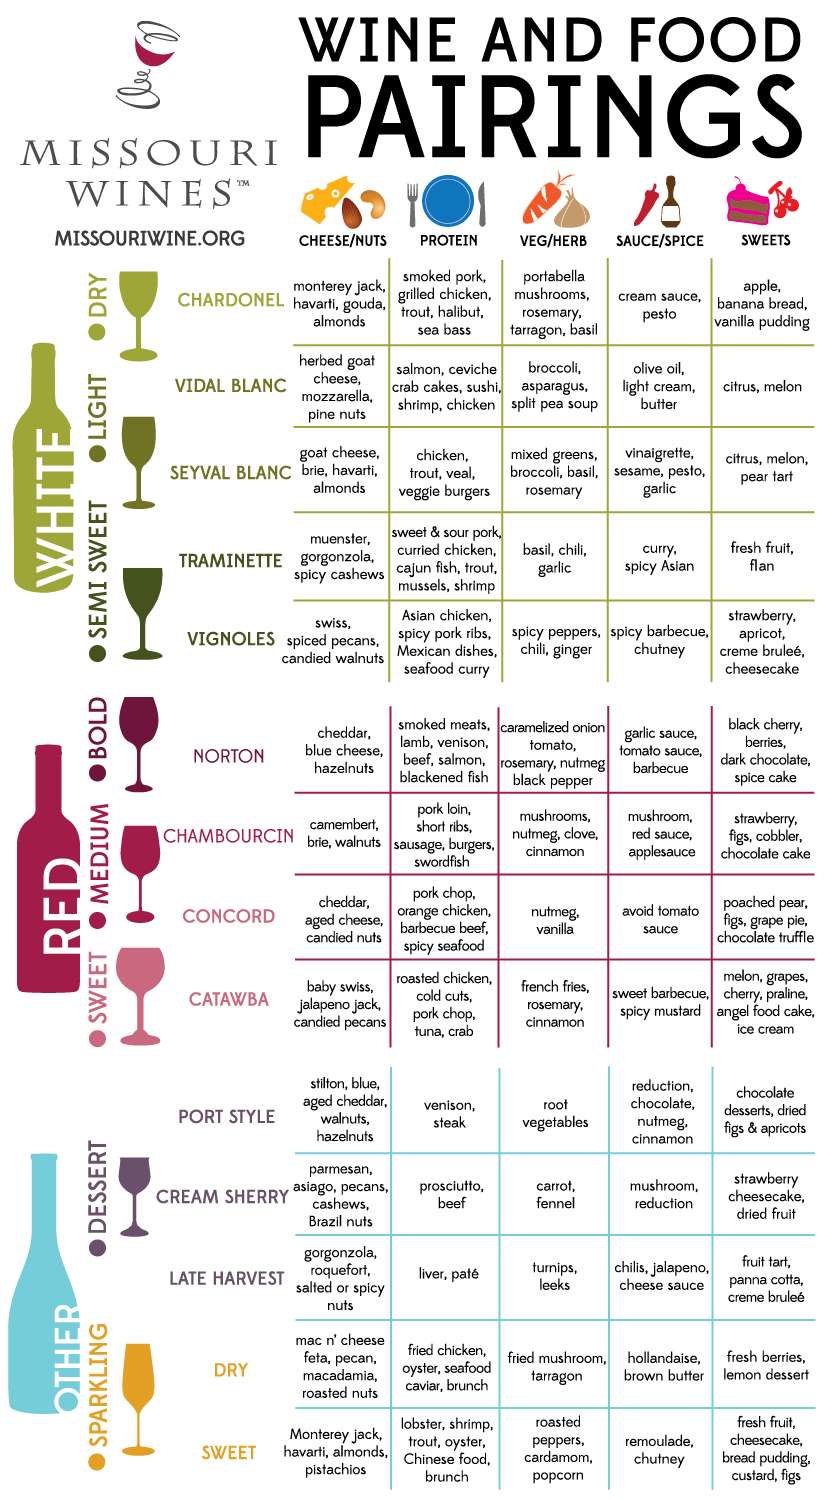 Wine and Food Pairing 2014